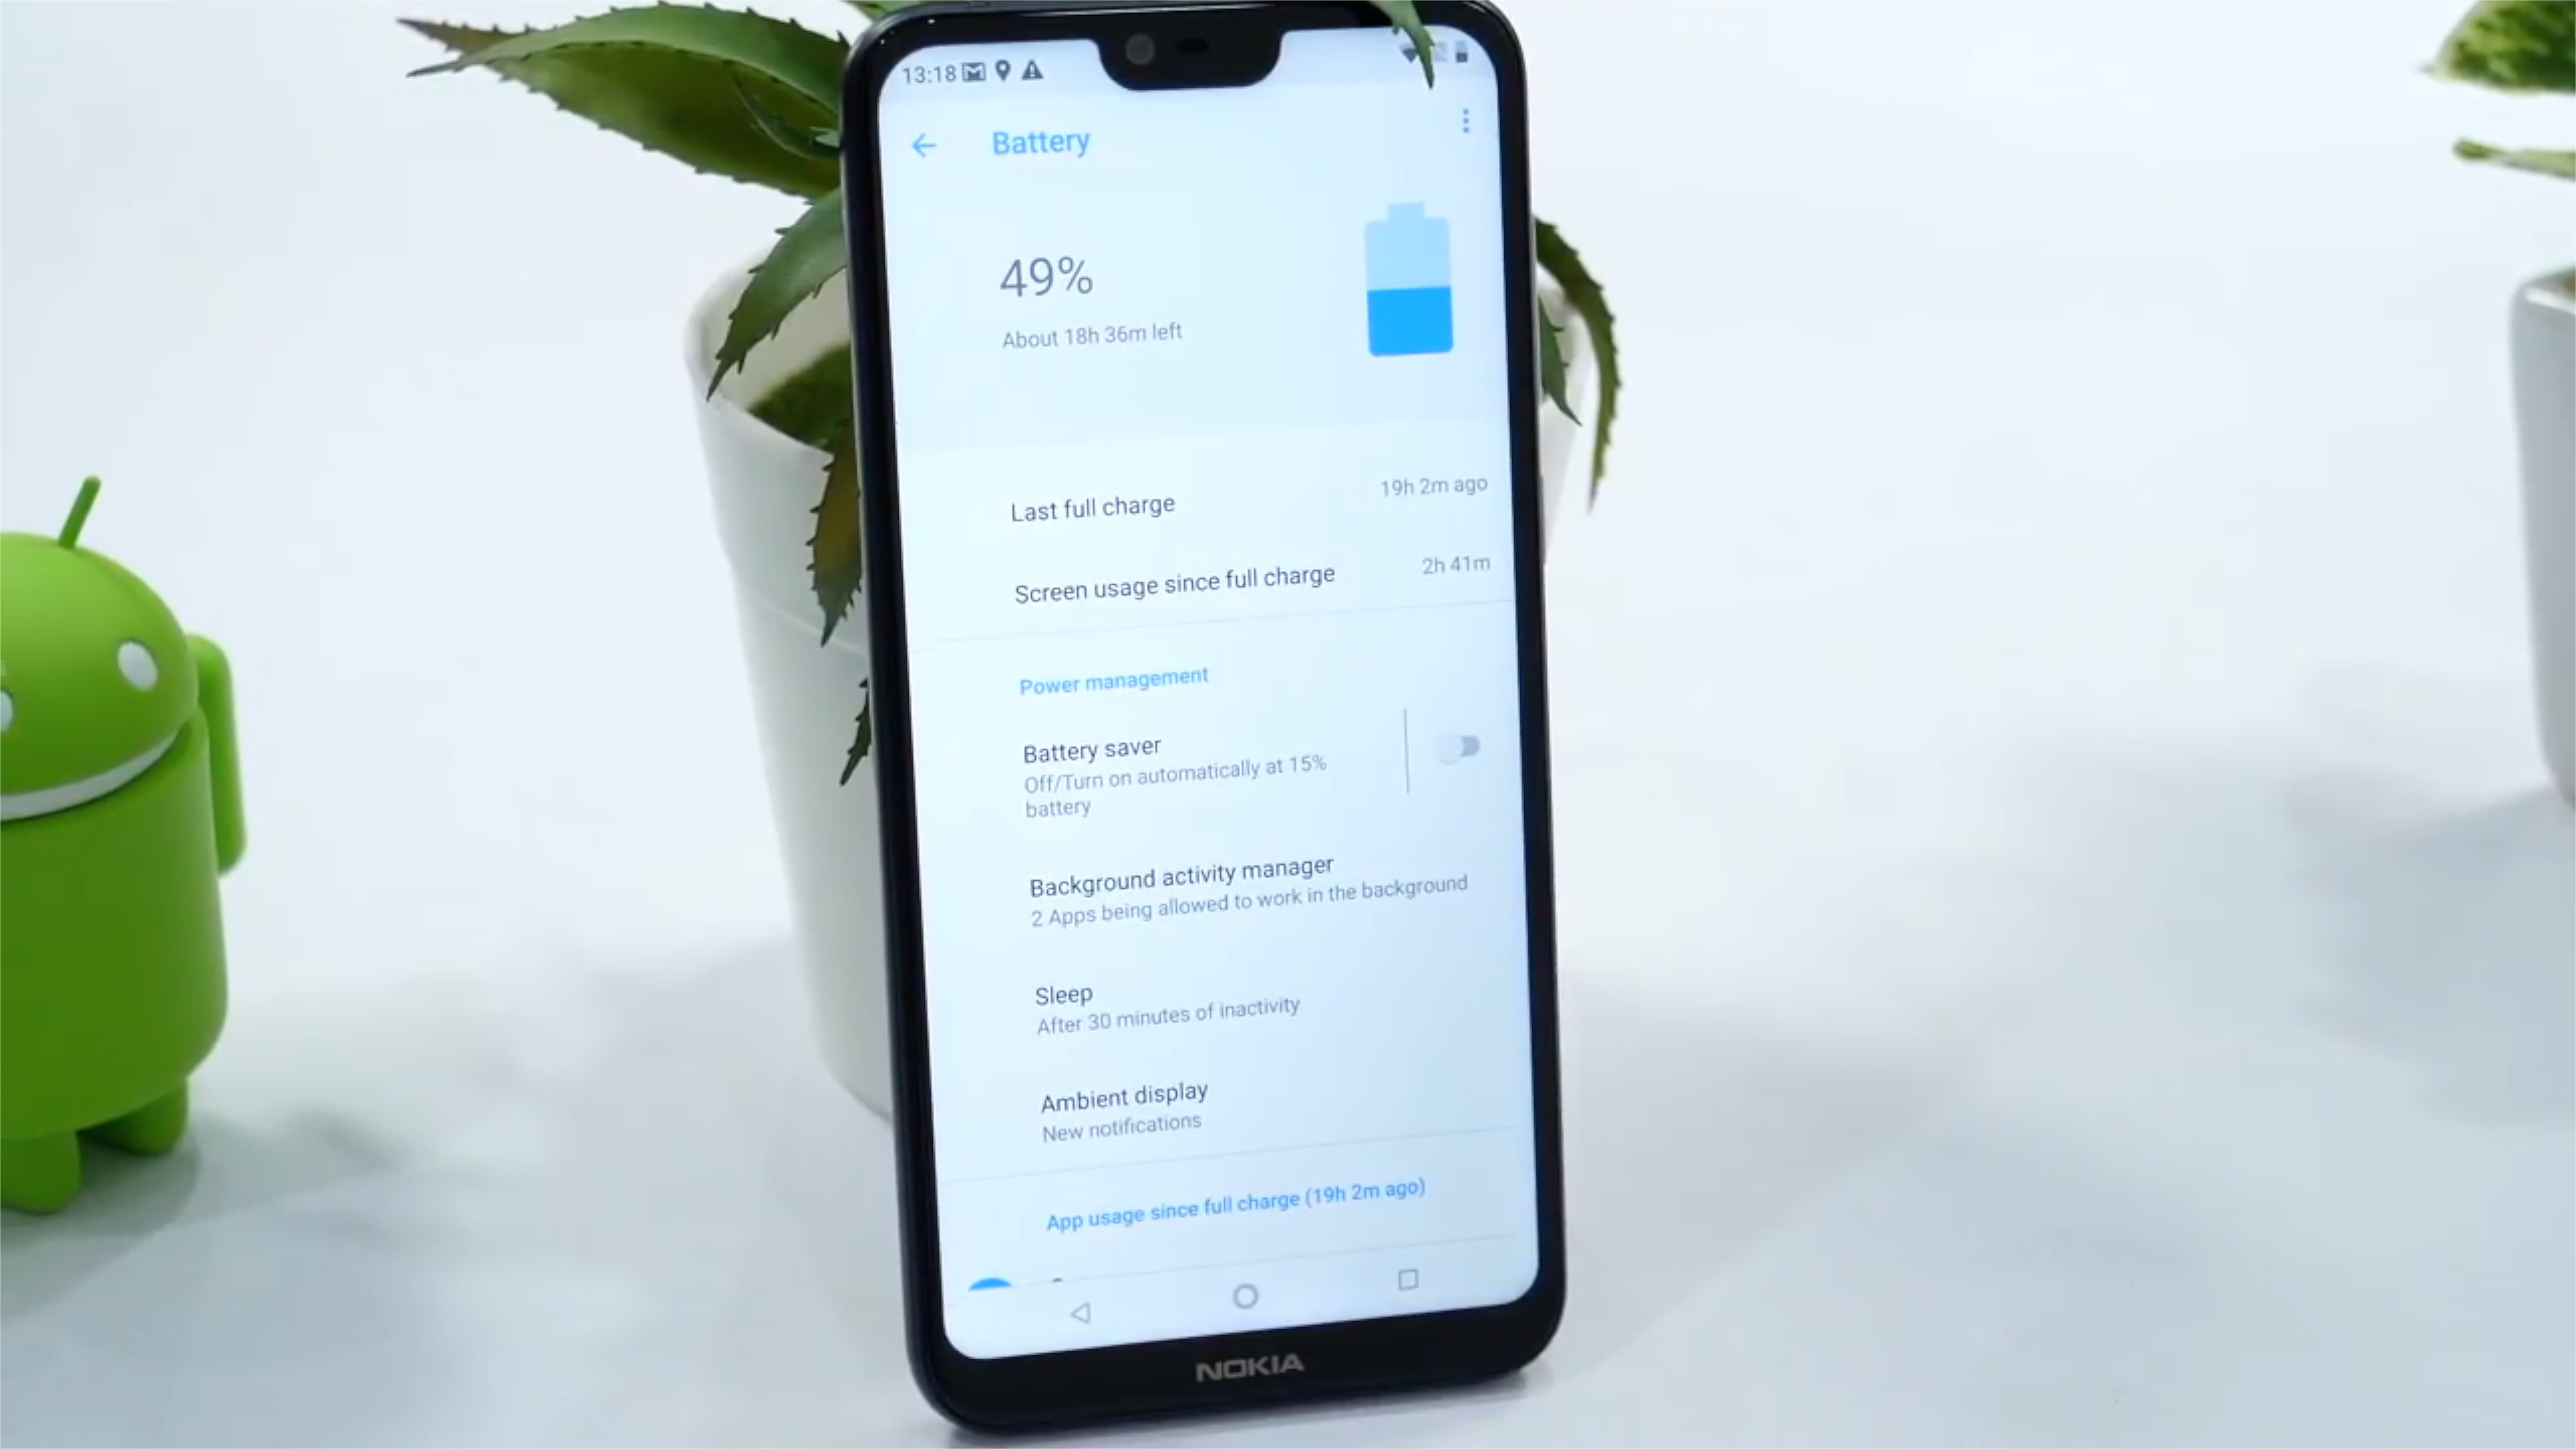 Nokia 6.1 Plus Battery Test - Battery Drain Test of Nokia 6.1 Plus